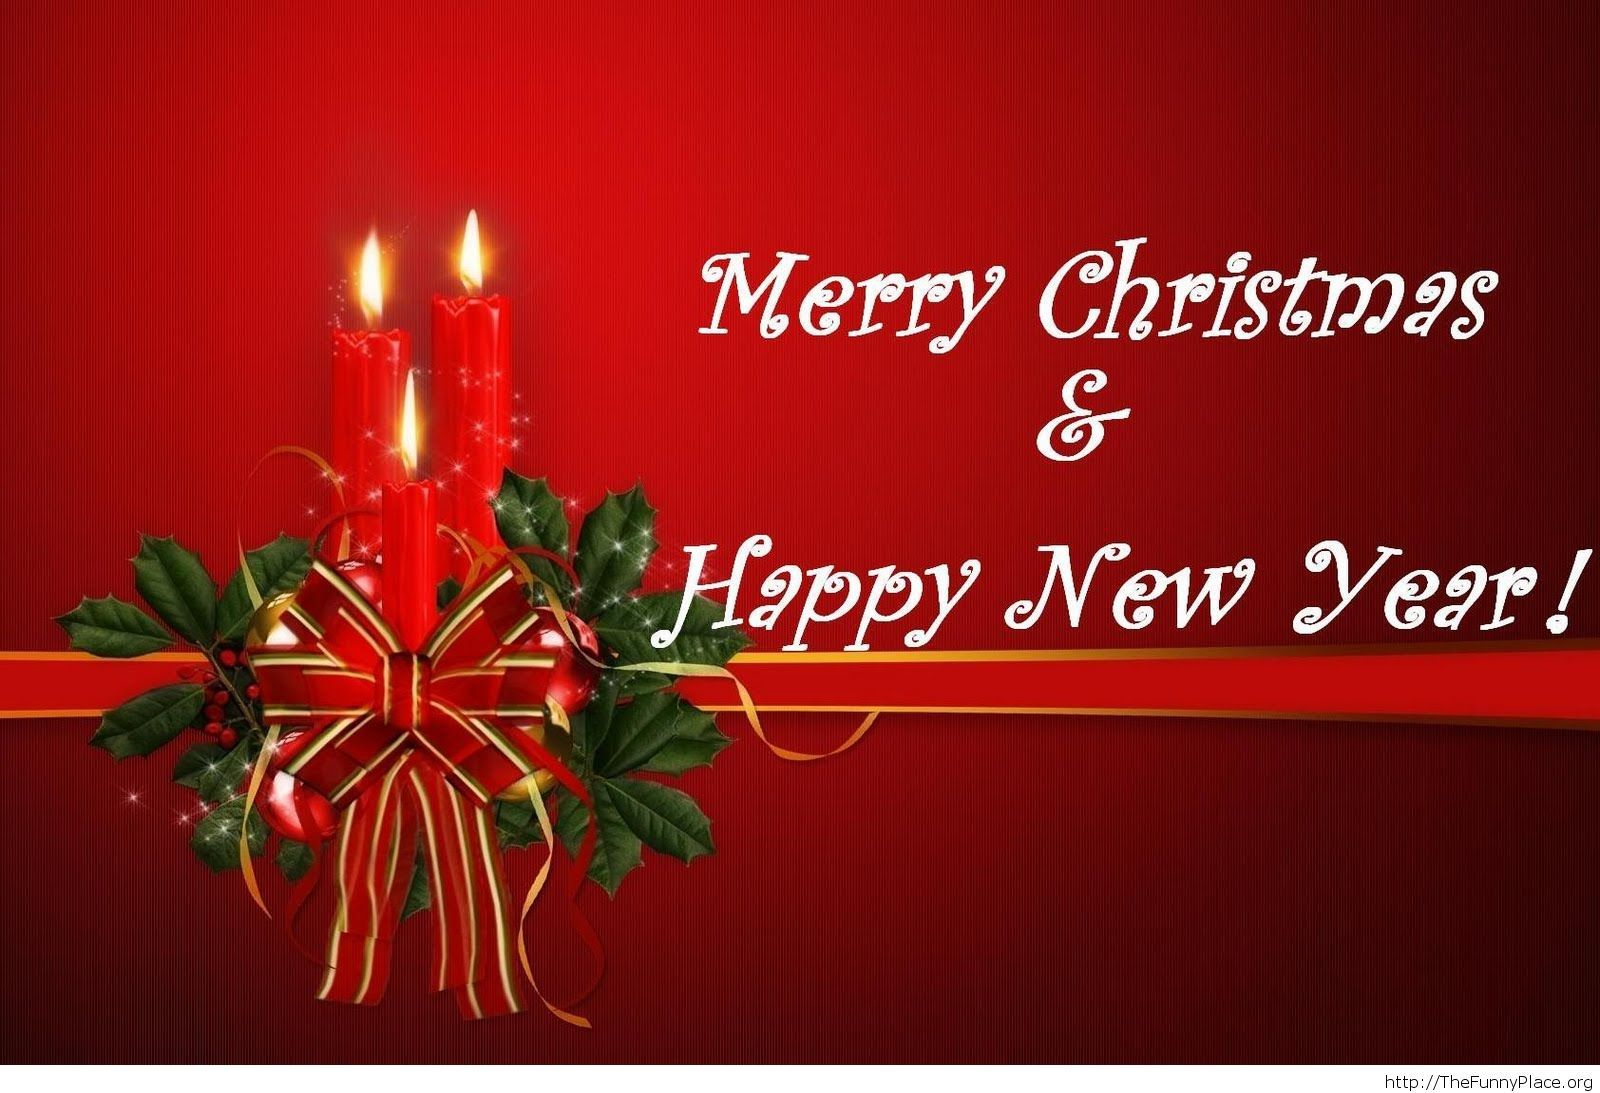 Merry Xmas and Happy New Year image